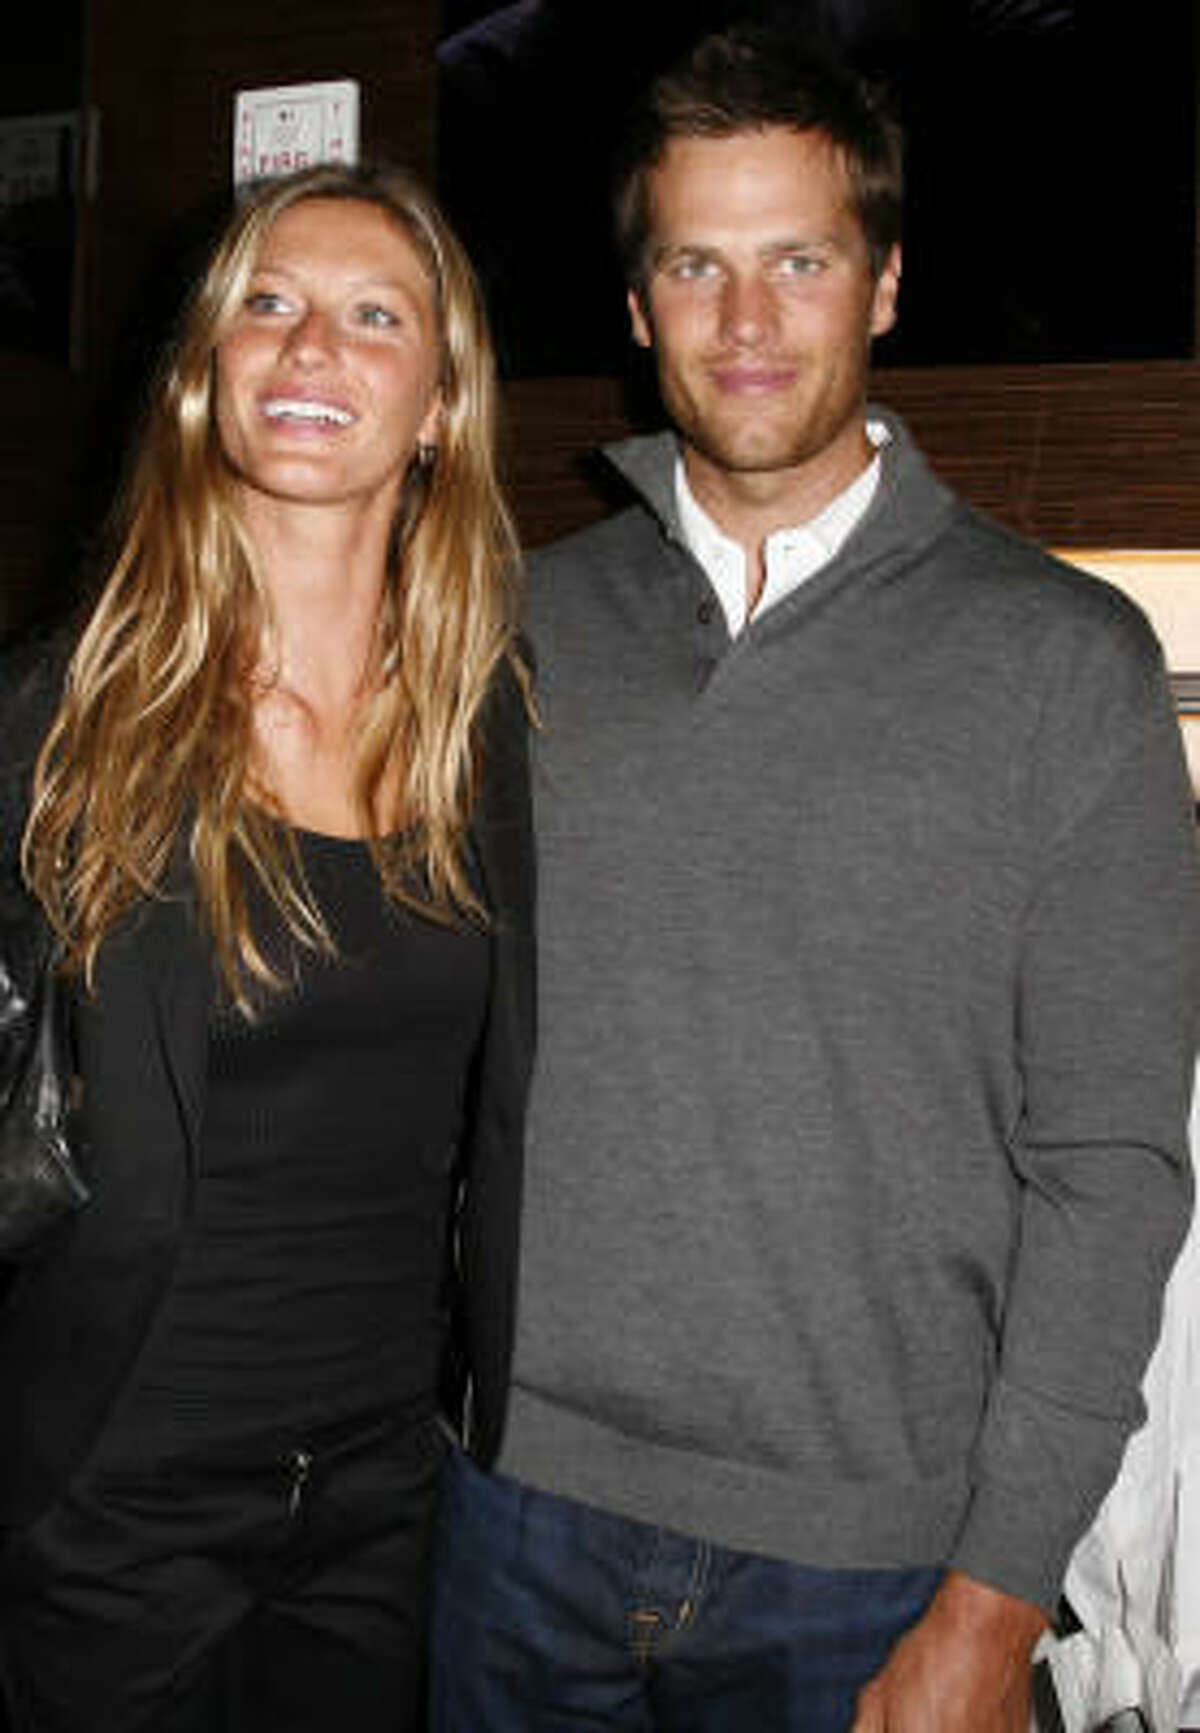 Photographers, Yuri Cortez and Rolando Aviles, have filed a lawsuit in New York against Brady and Bündchen seeking over $1 million in damages over the incident.